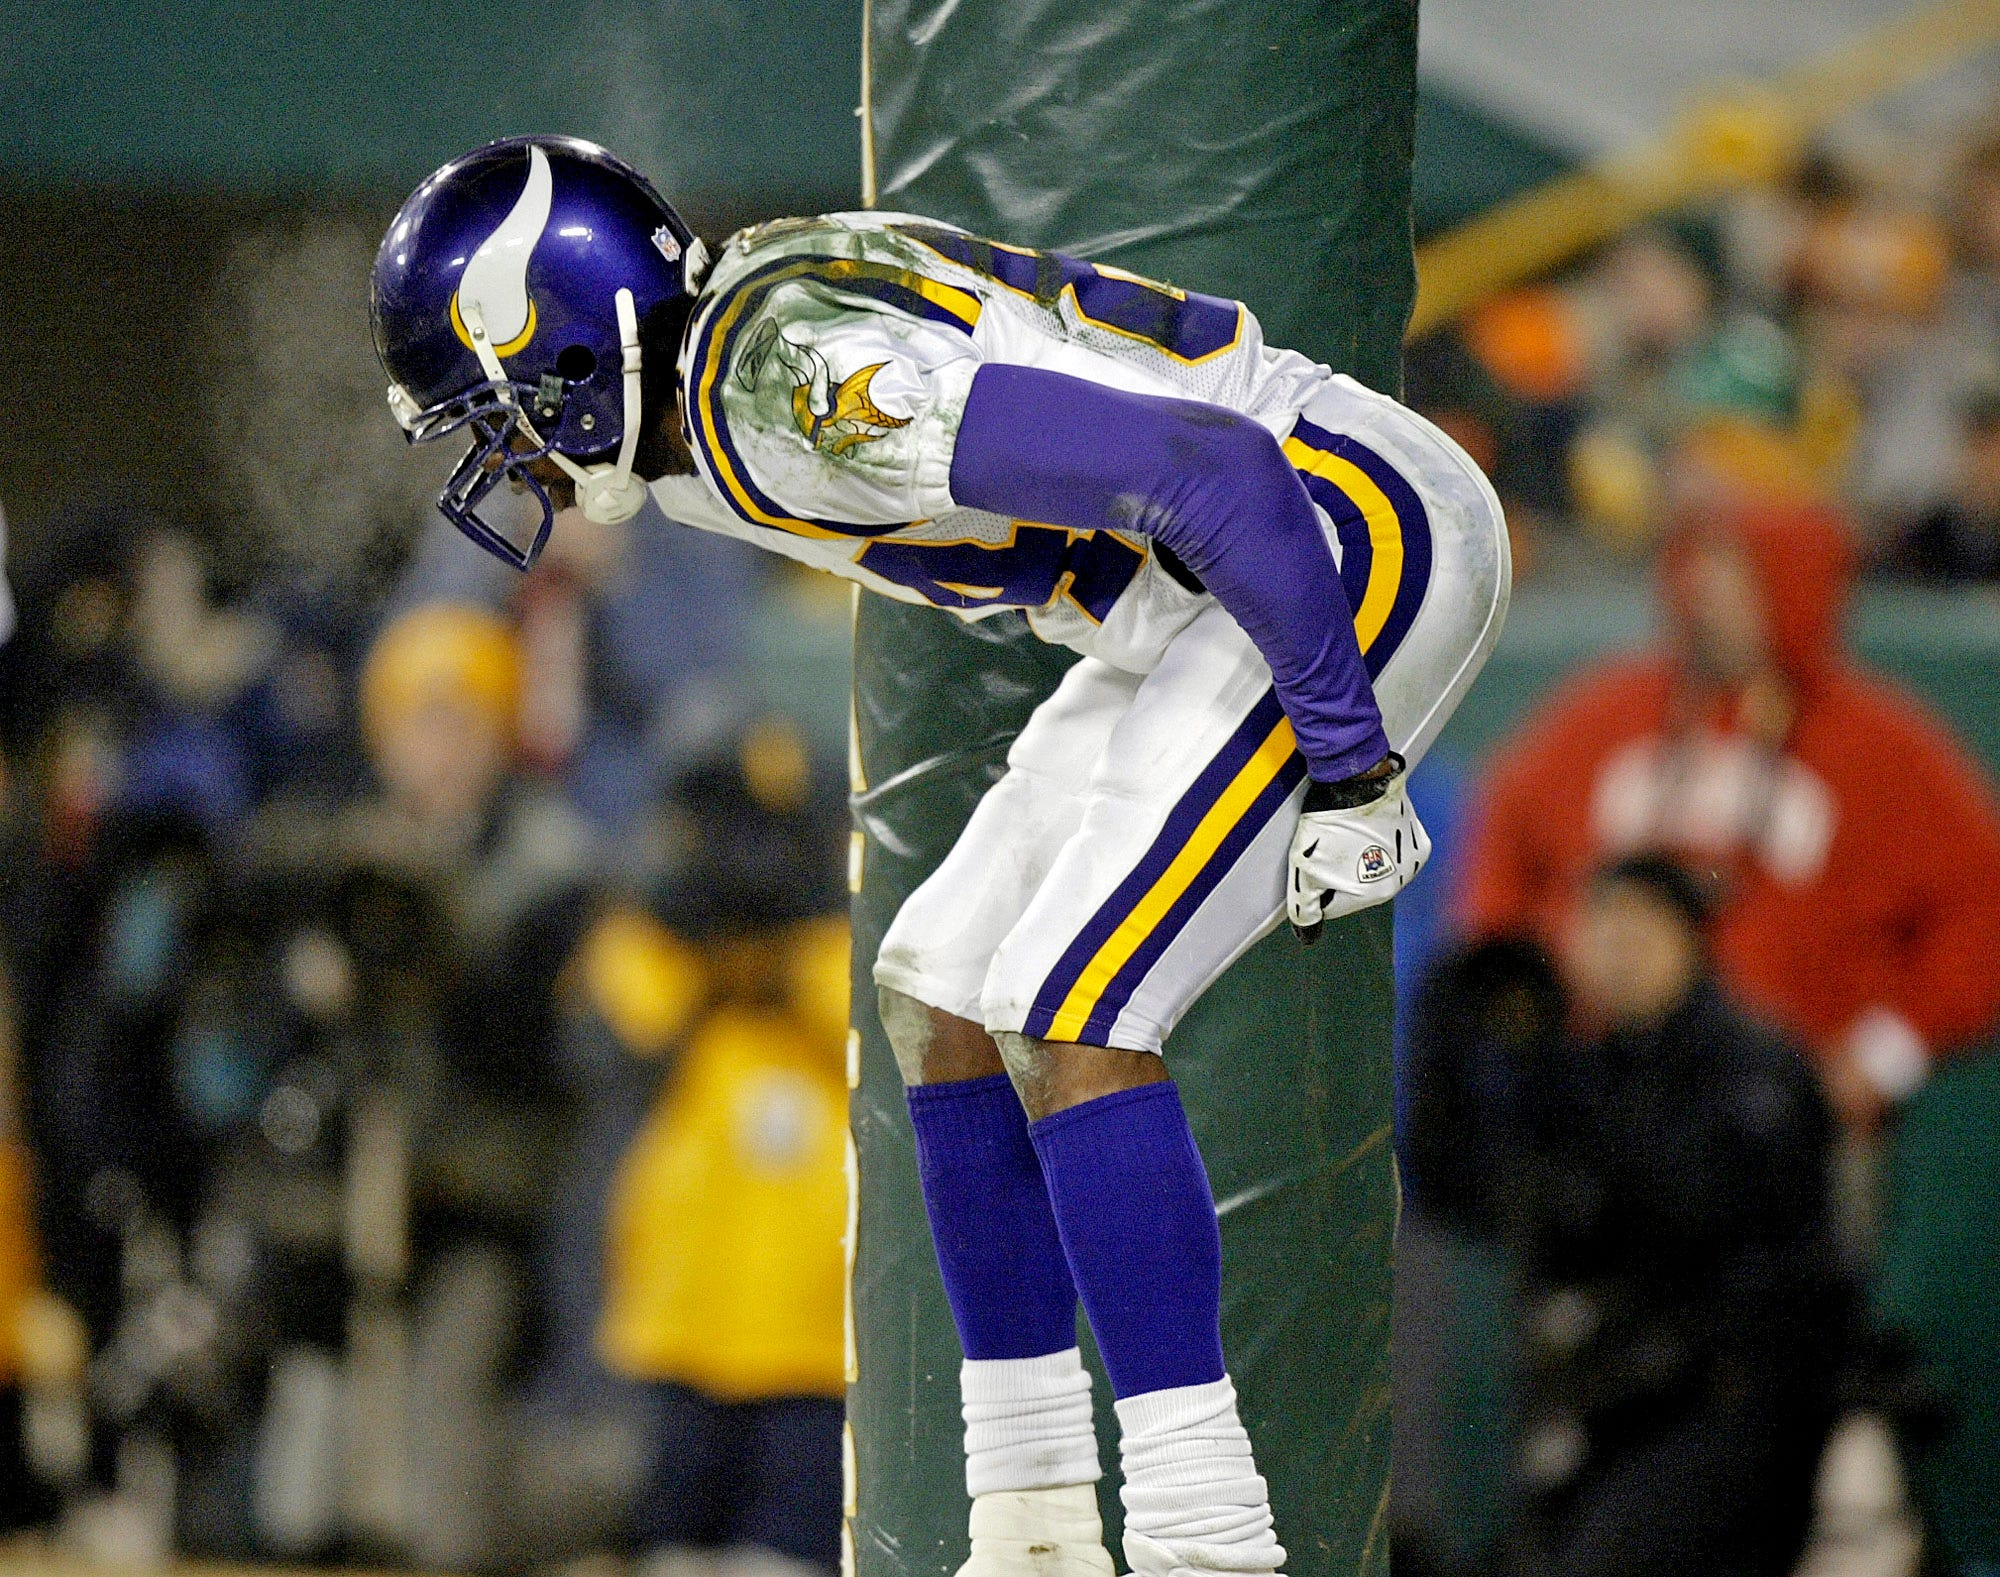 Randy Moss bends over to the crowd after scoring a touchdown in an NFC wild-card playoff game against the Packers on Jan. 9, 2005.